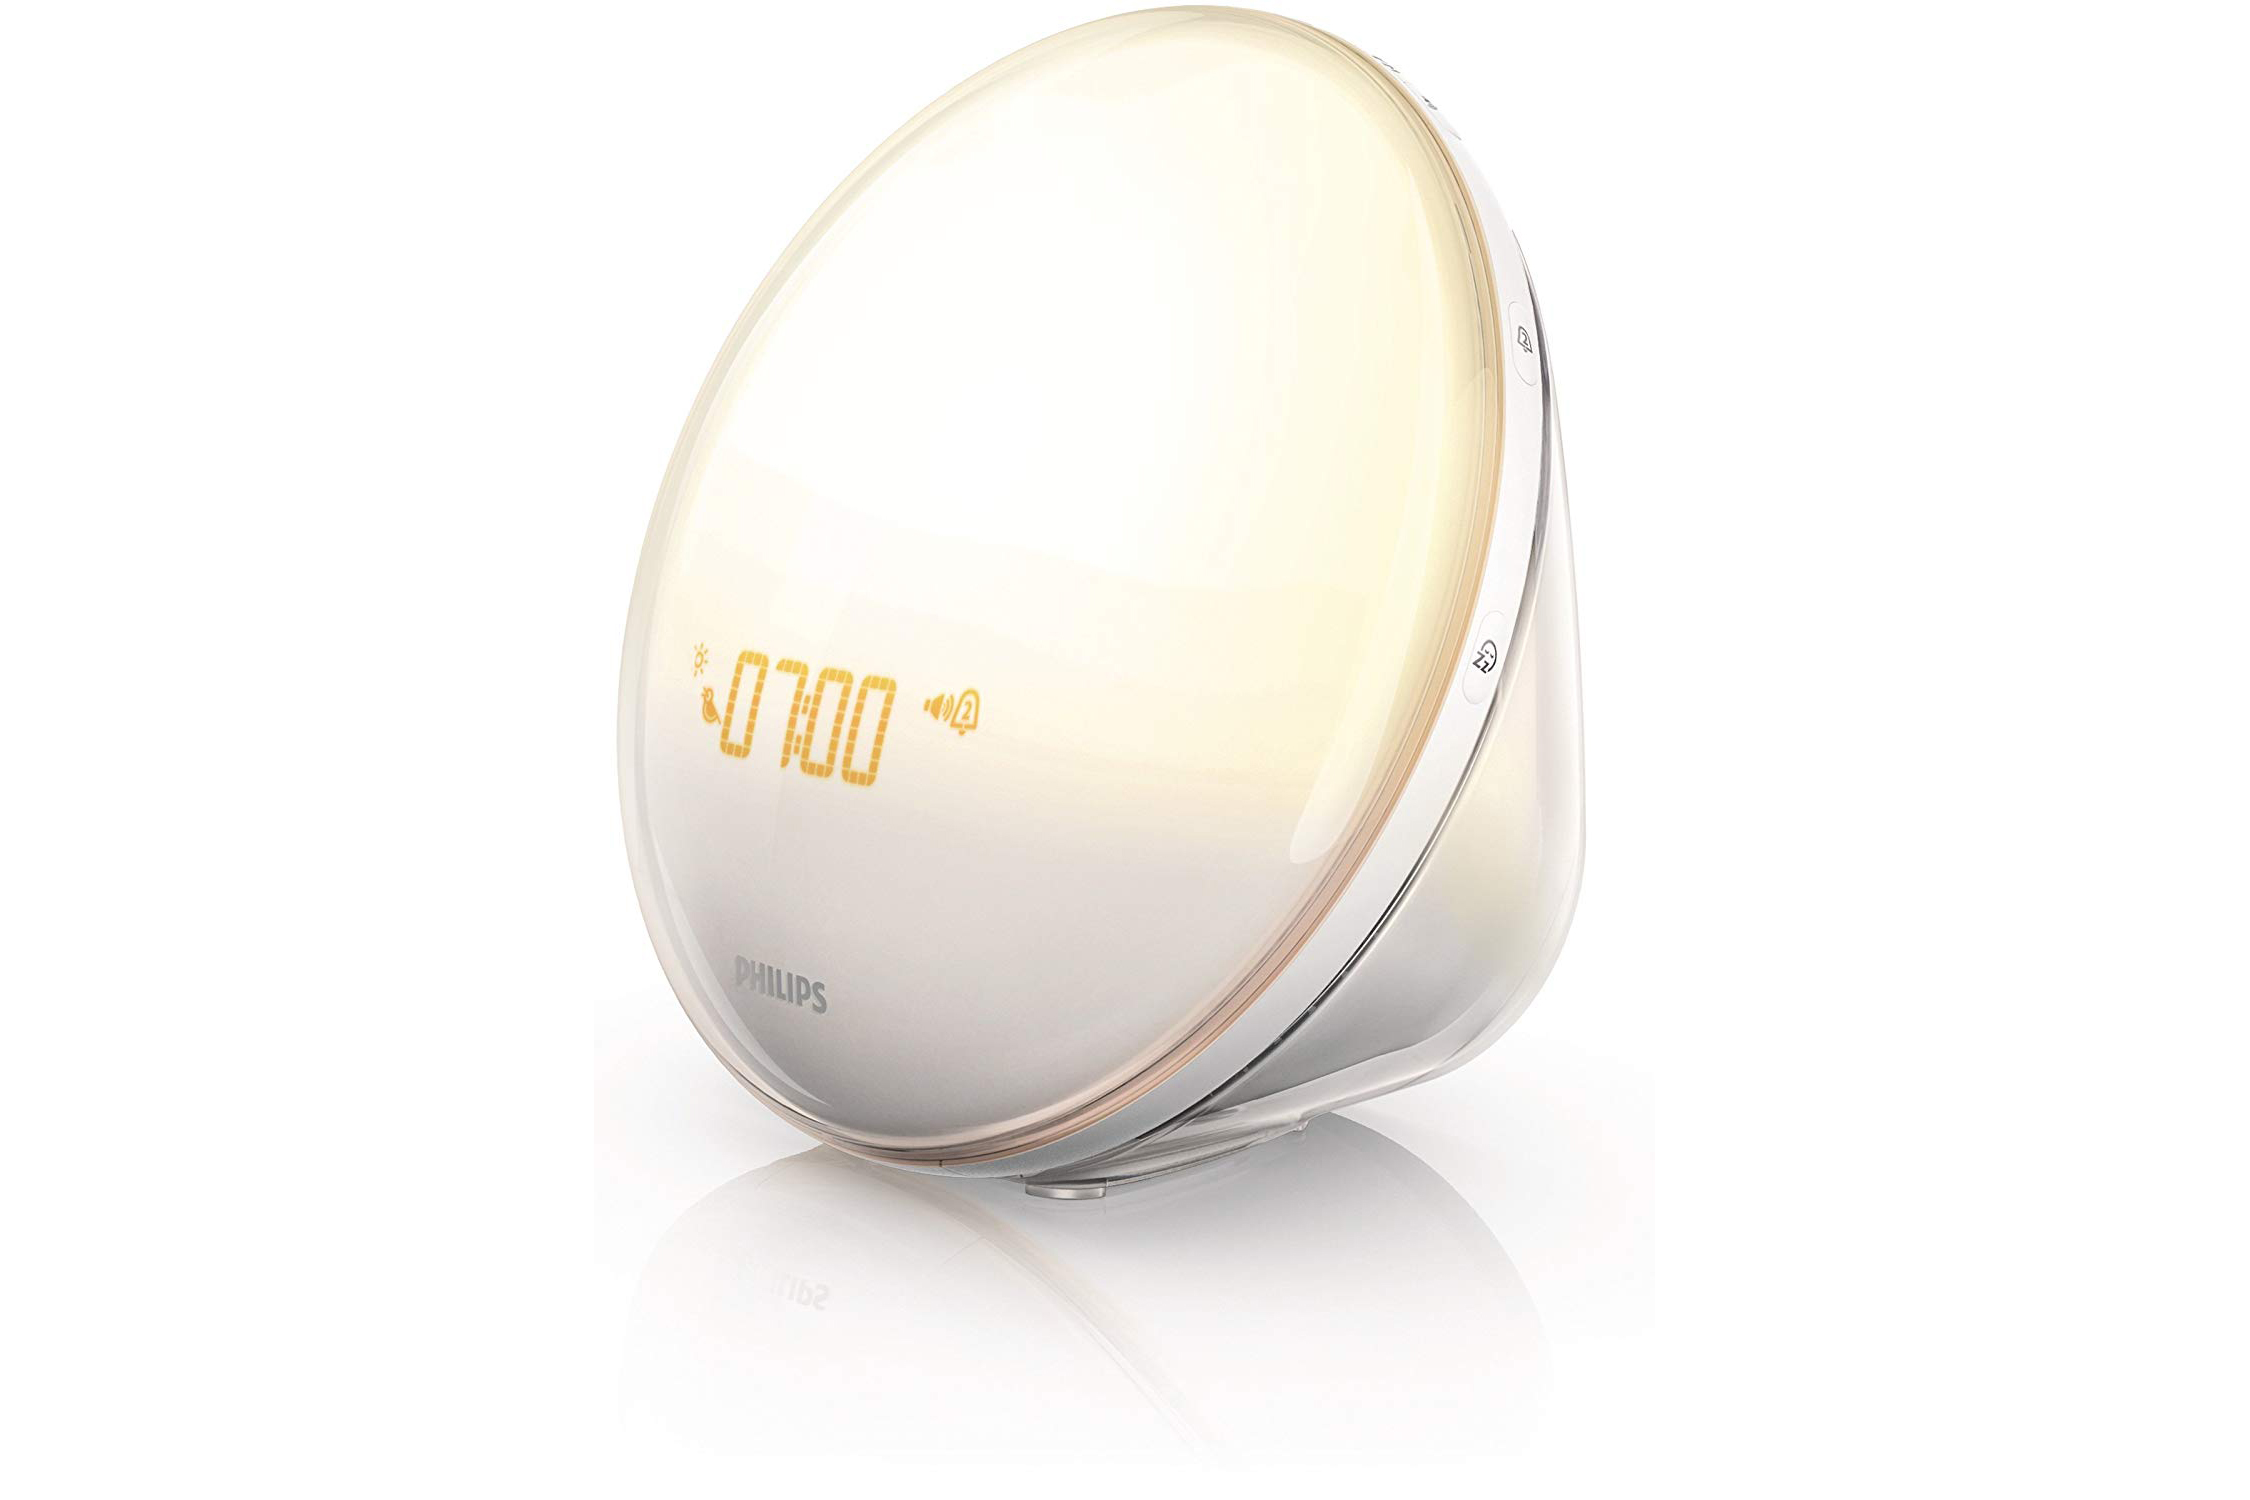 Philips Wake-Up Light HF3520 The Fully Optimized Day